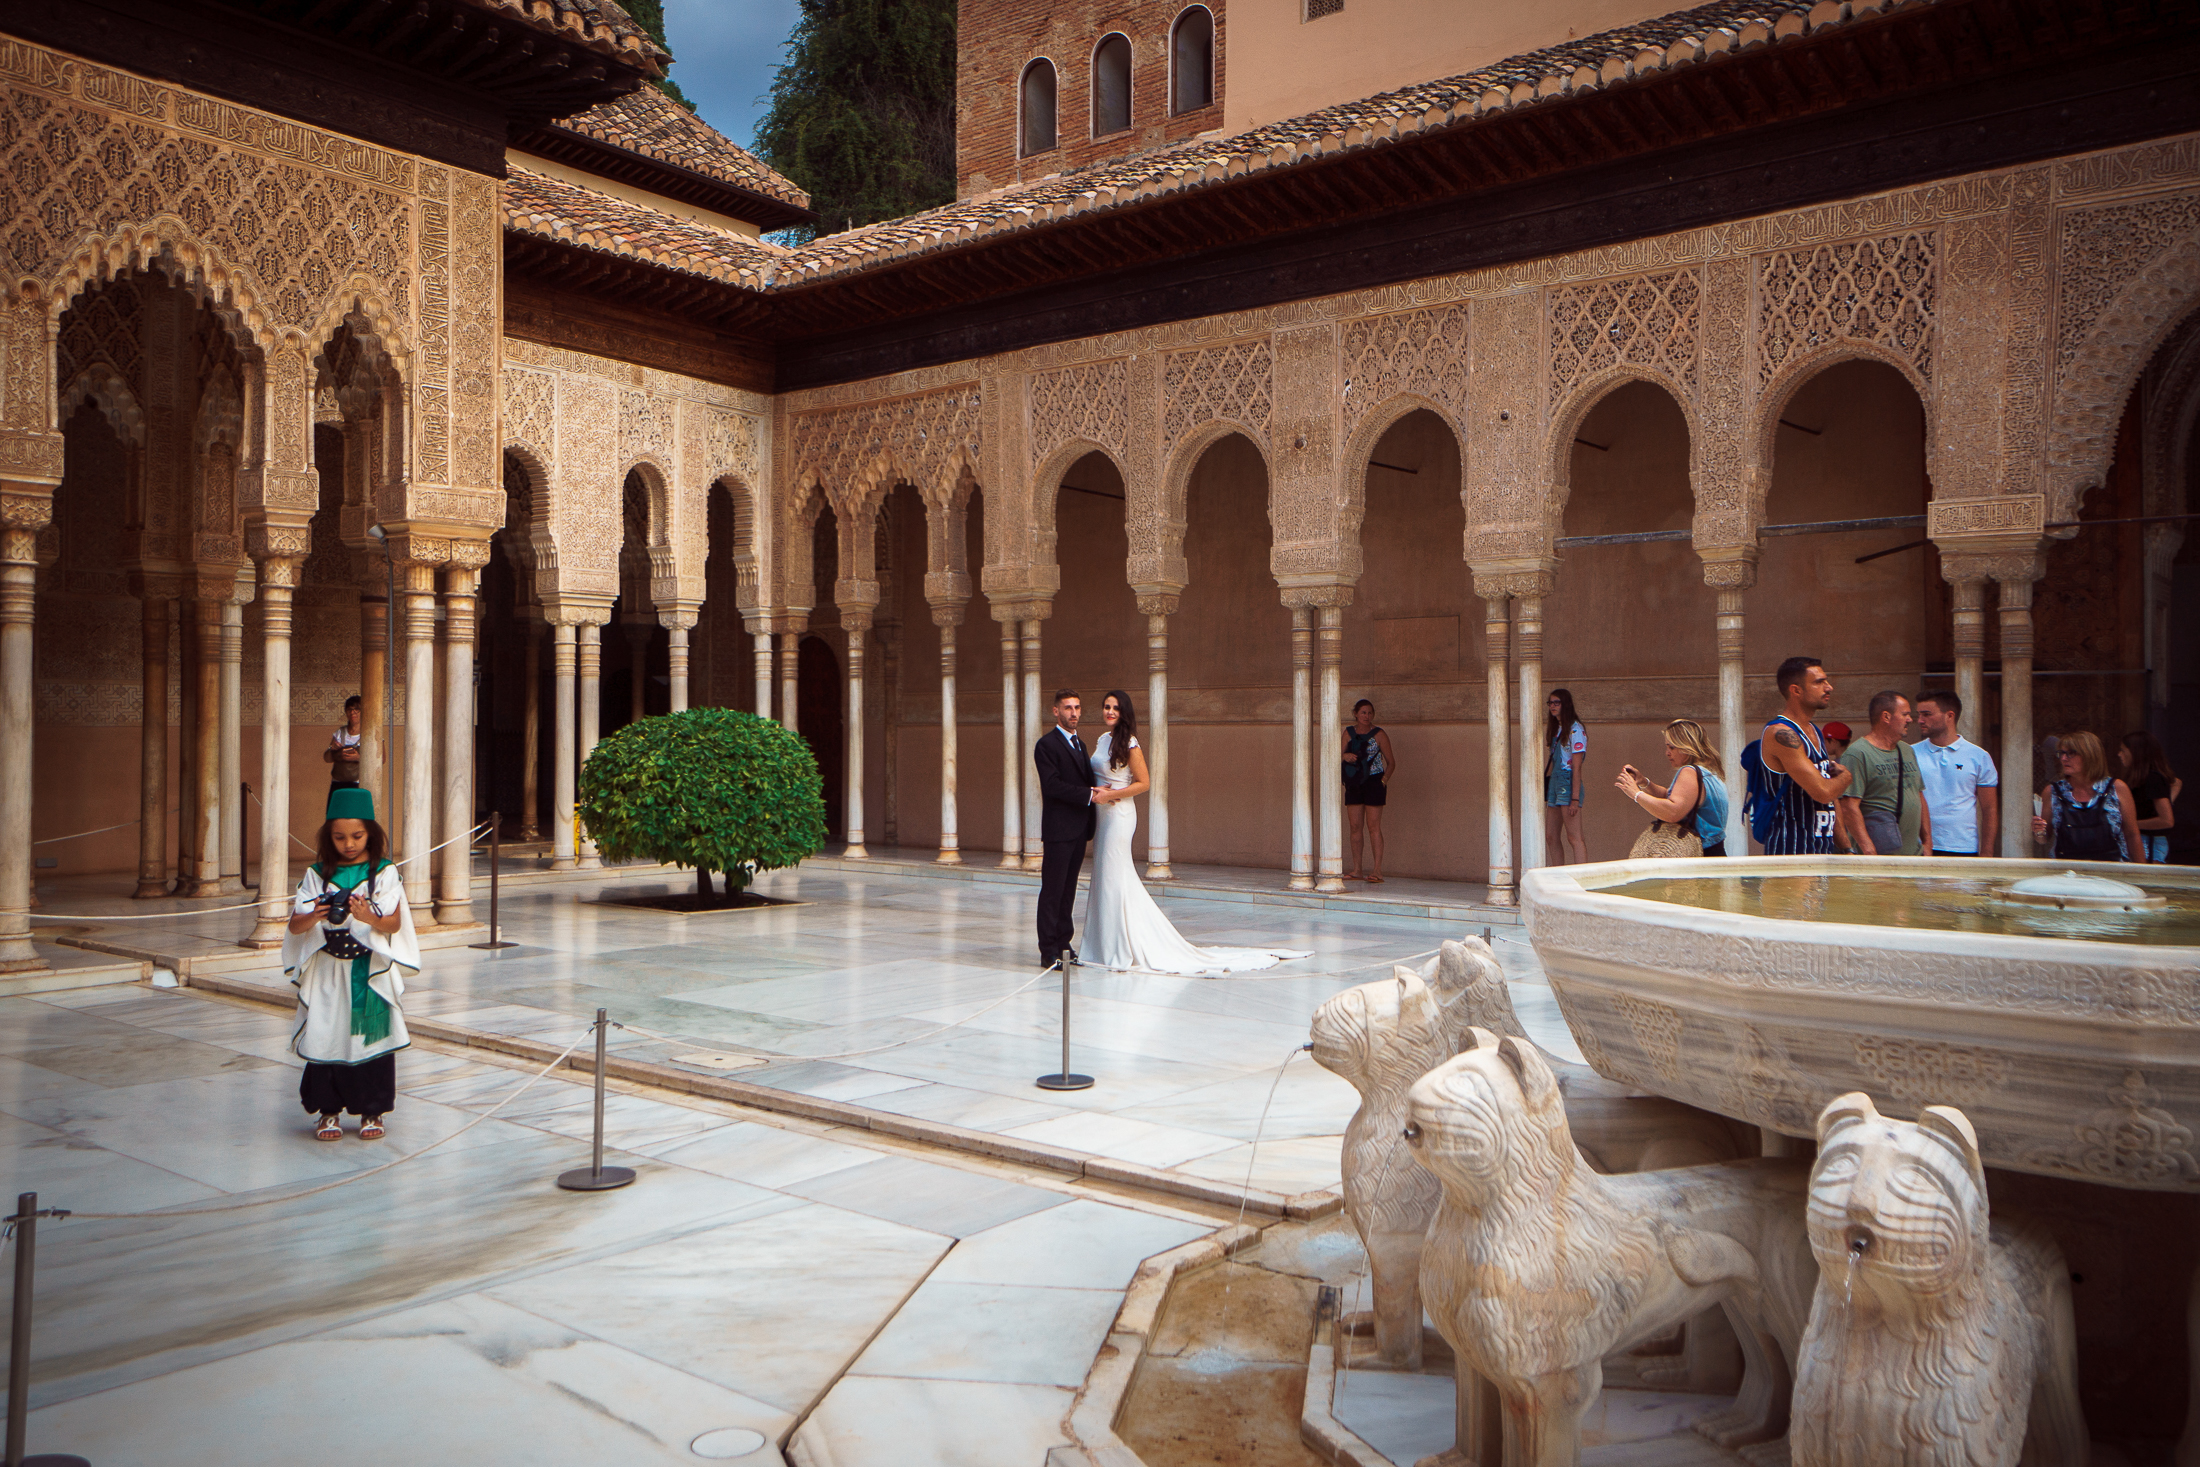 Court of the lions, Wedding in Alhambra